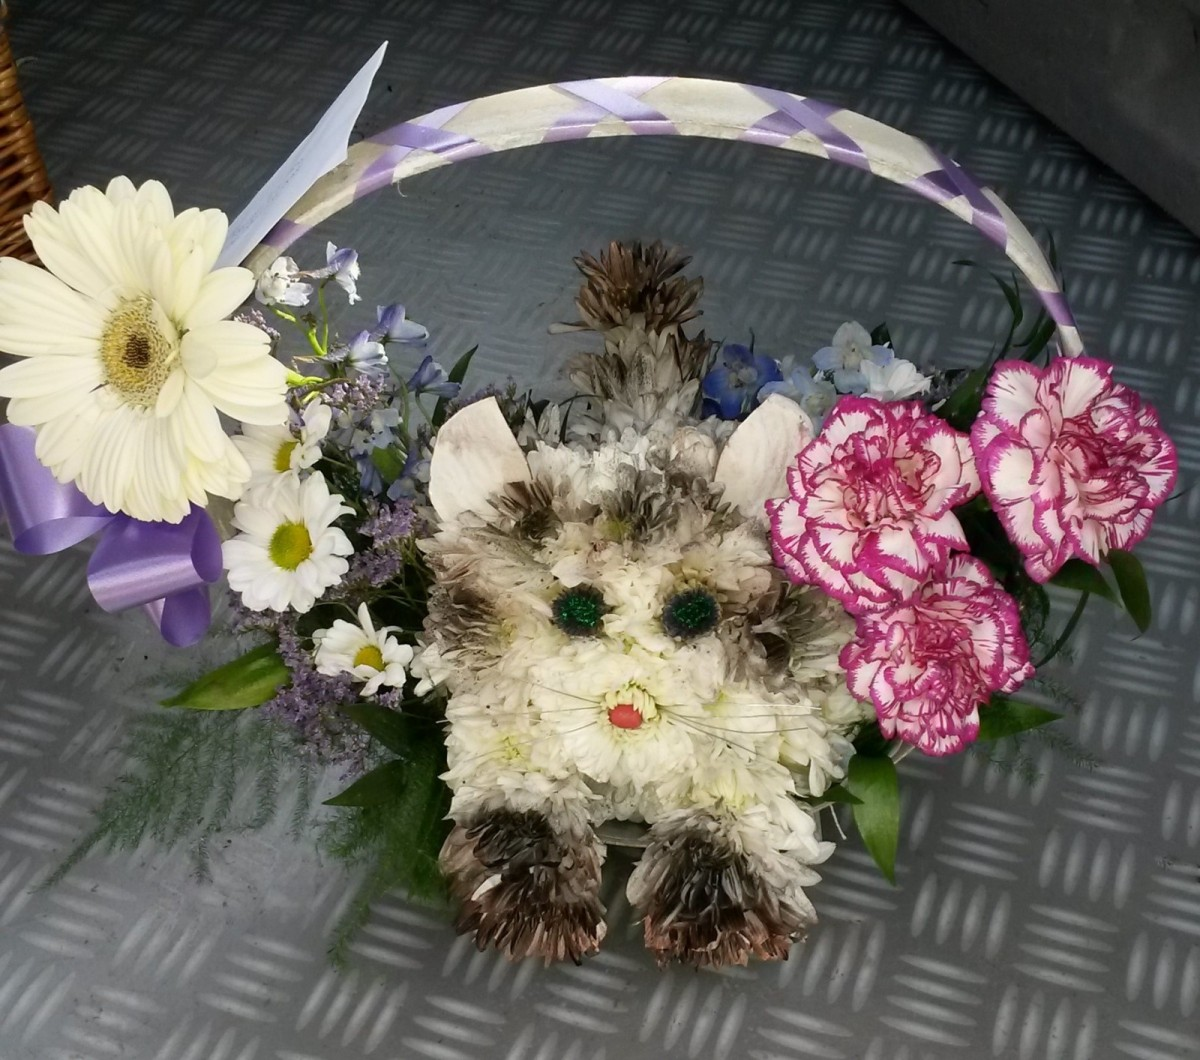 Cat basket Crescent - £27.50 in the Mothers Day Flowers category